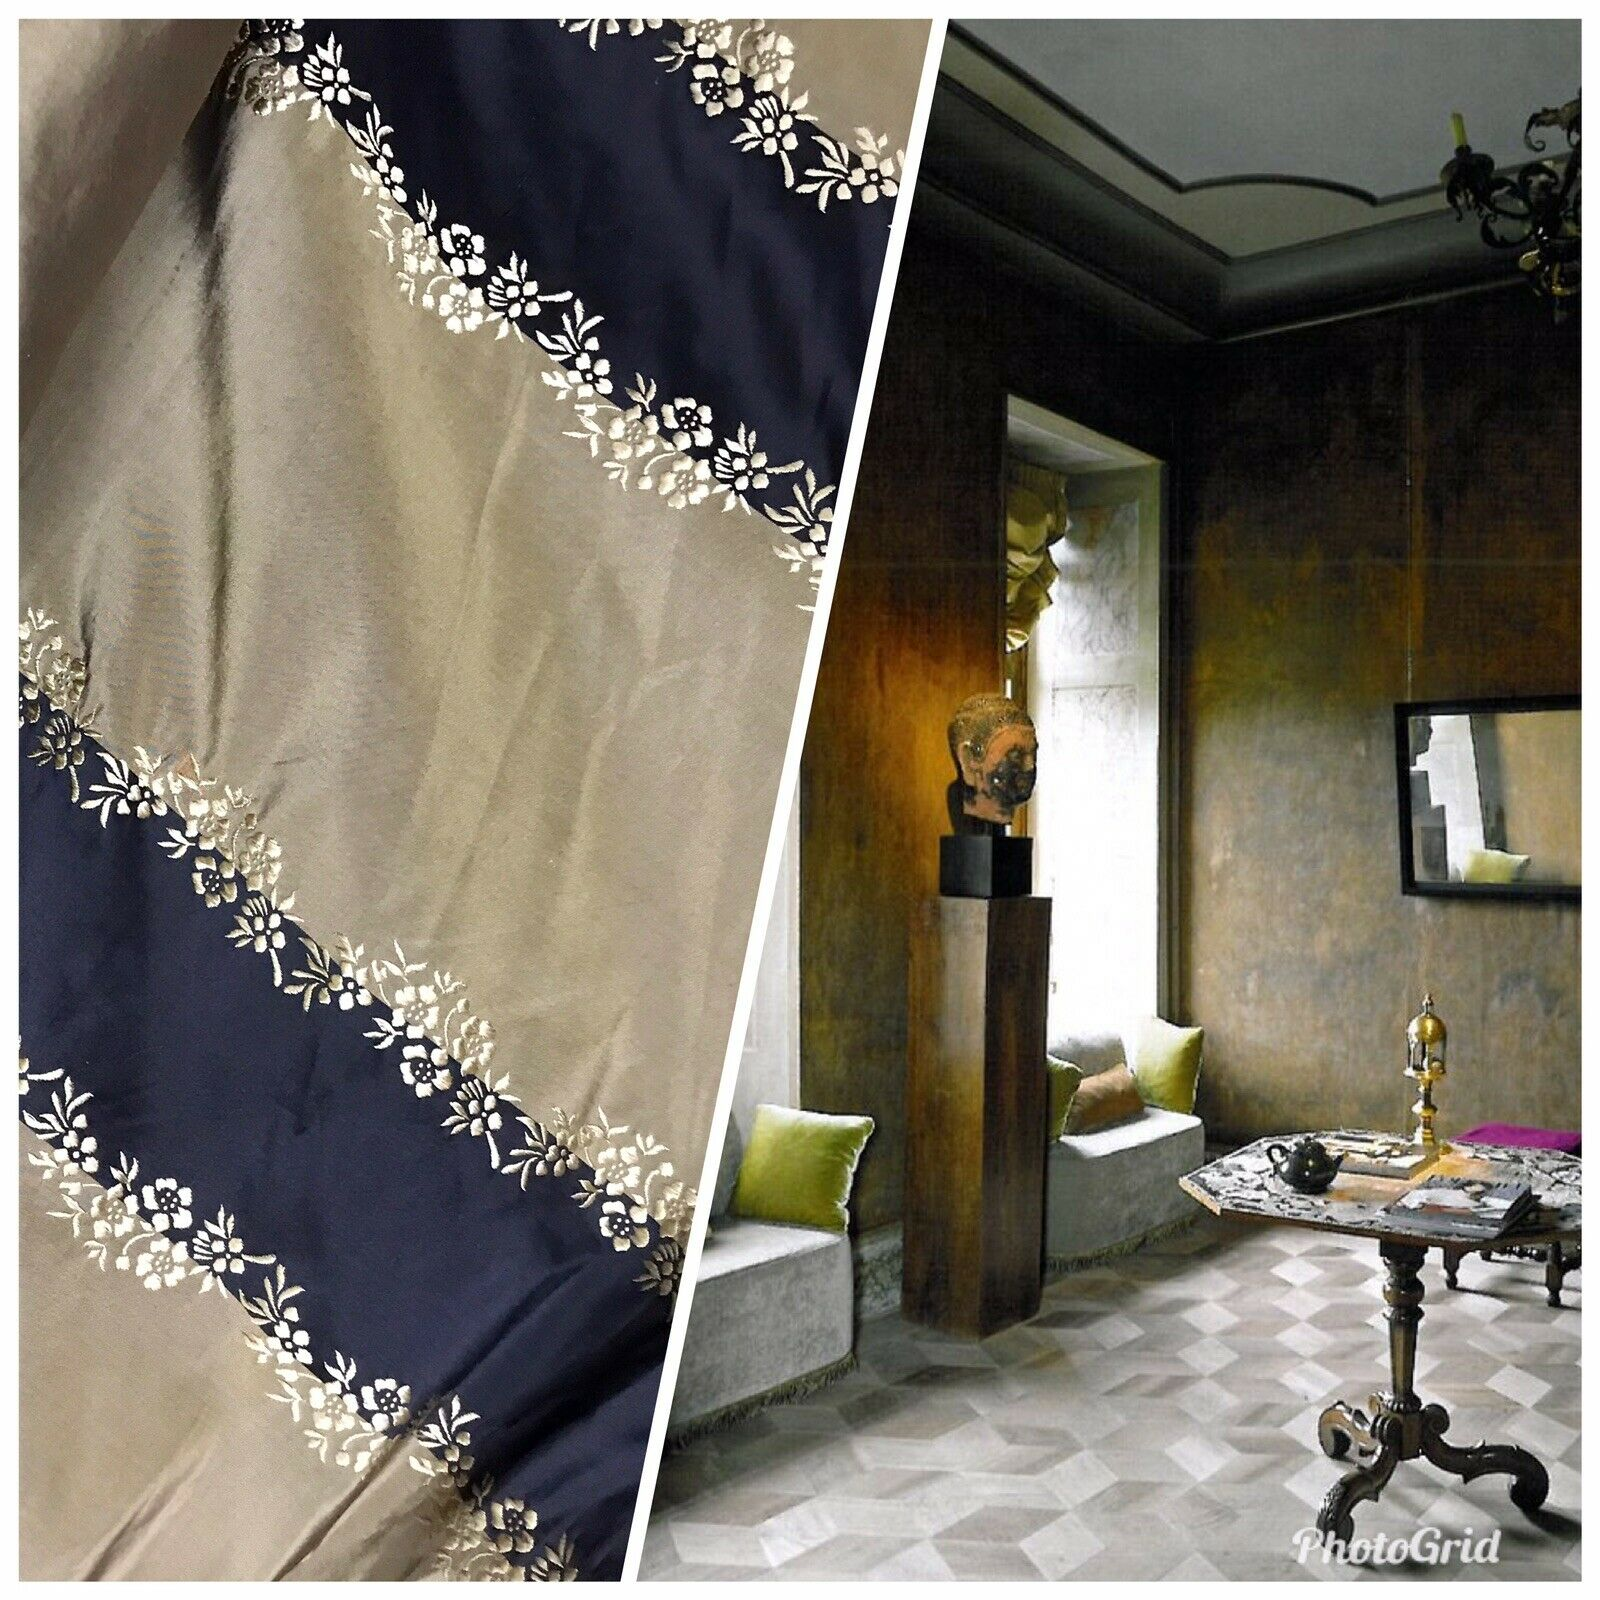 NEW! Lady Kristen 100% Silk Taffeta Embroidered Stripe Floral Fabric- Khaki Black Gold